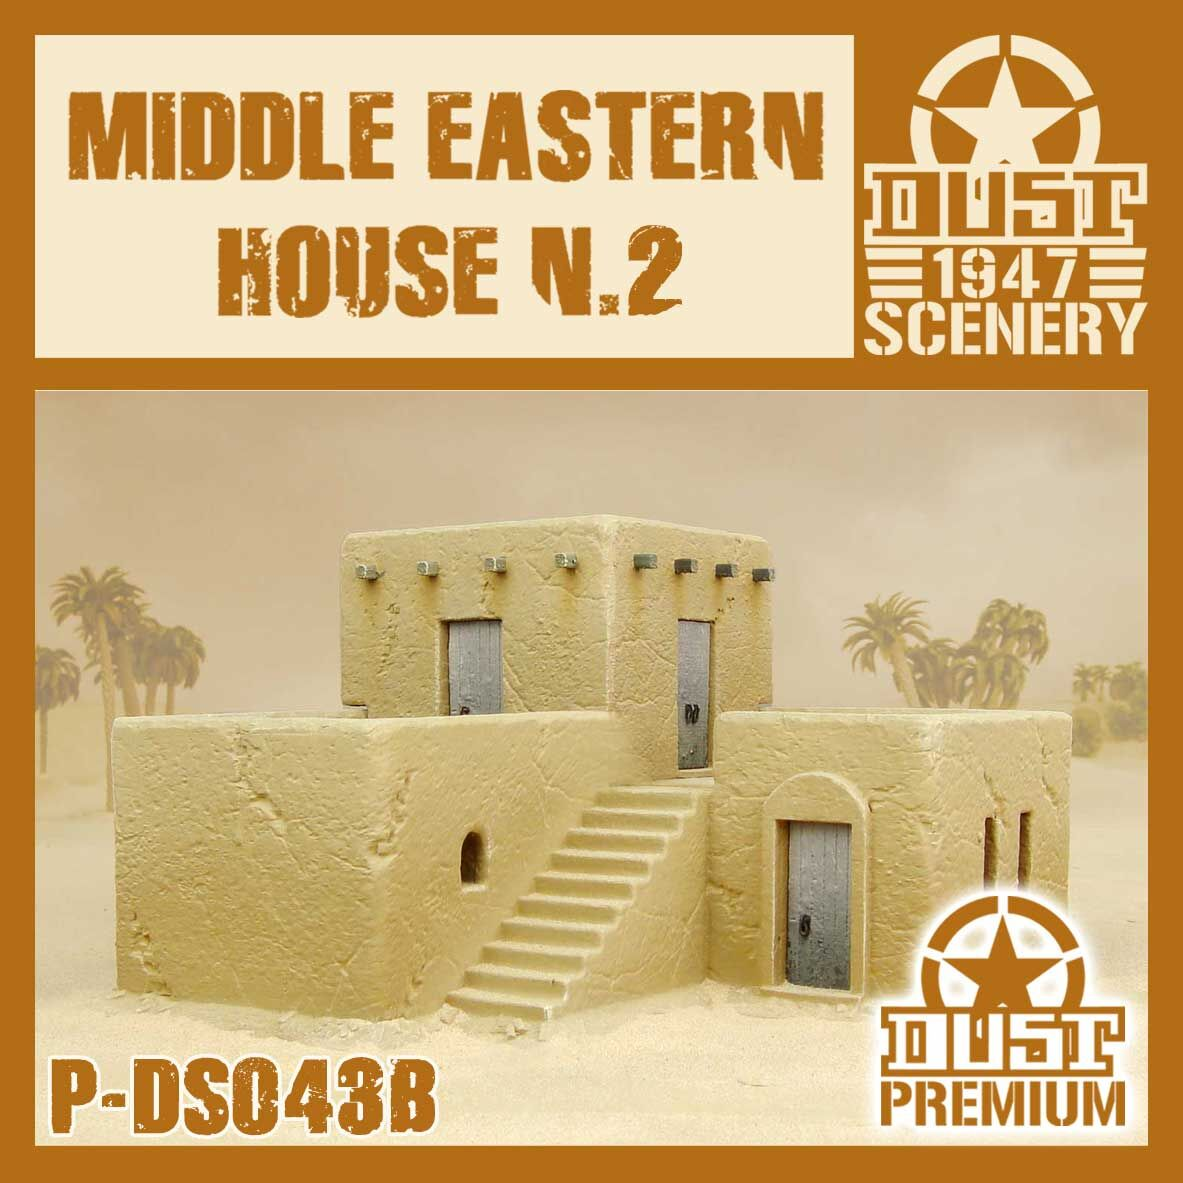 Middle Eastern House N.2 Premium